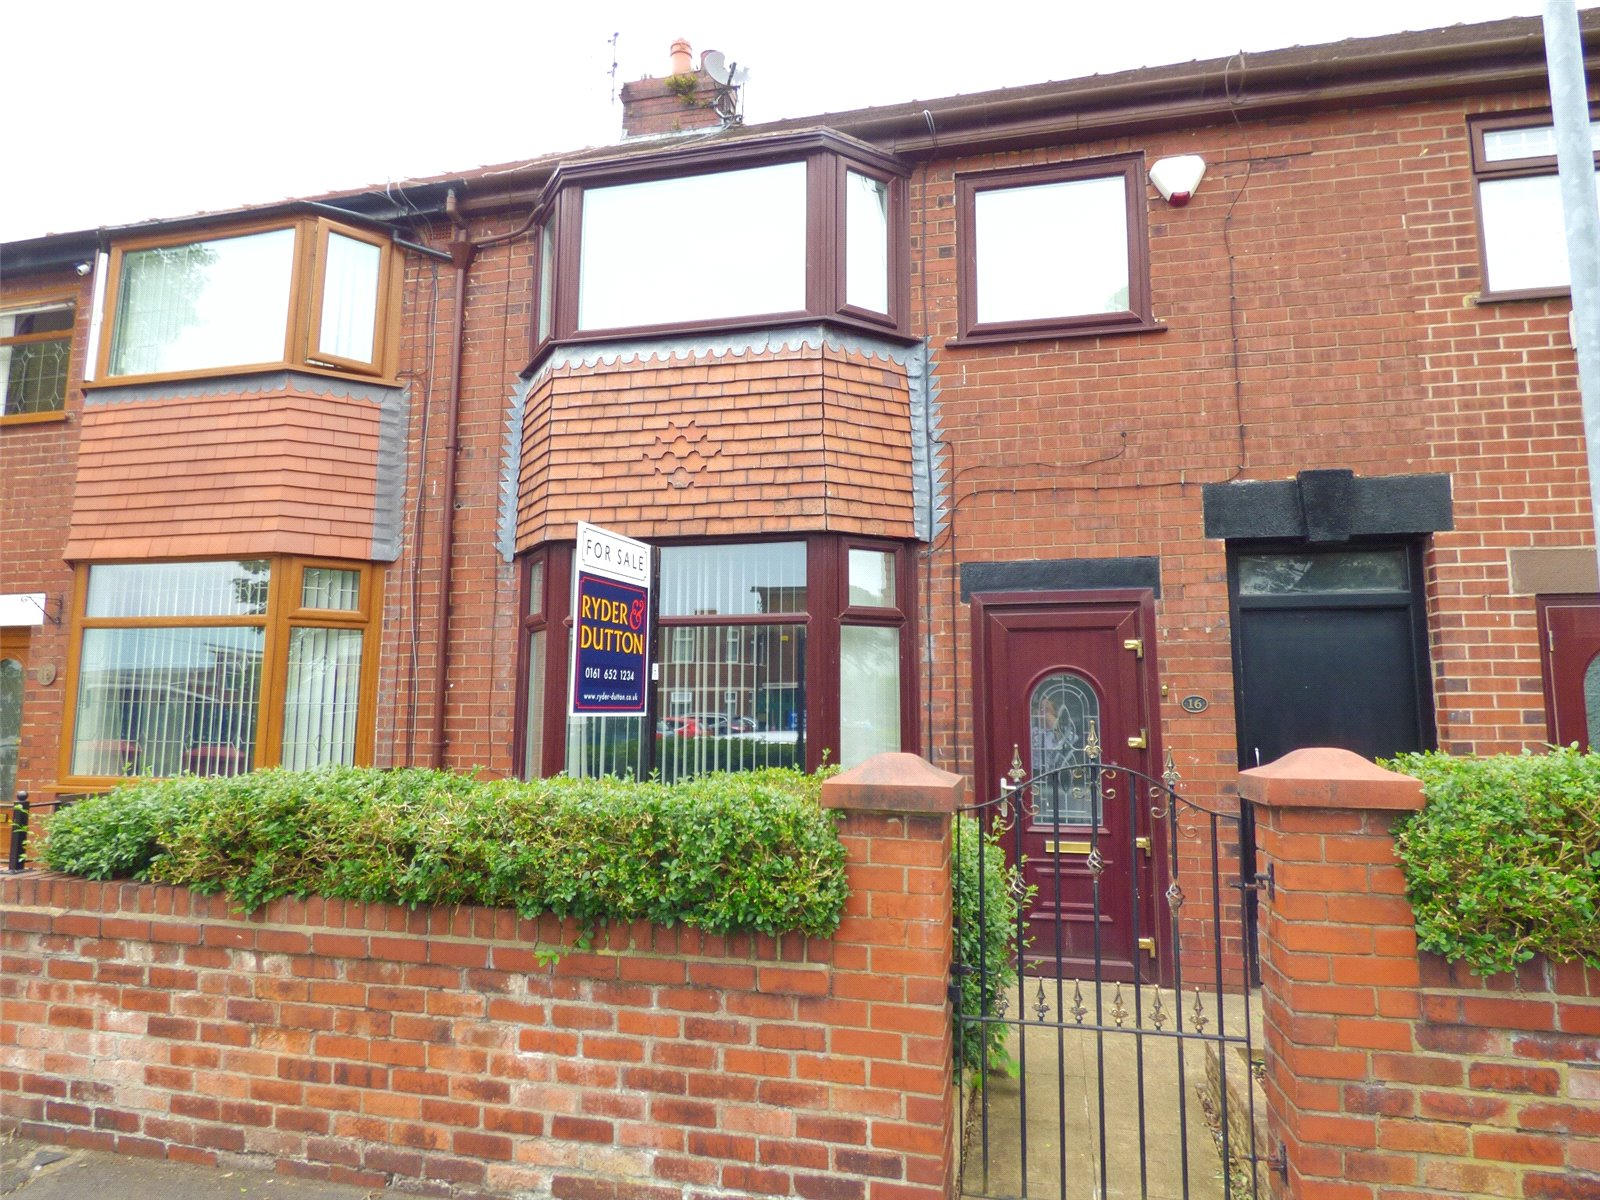 3 Bedrooms Terraced House for sale in Bellfield Avenue, Hathershaw, Oldham, Greater Manchester, OL8